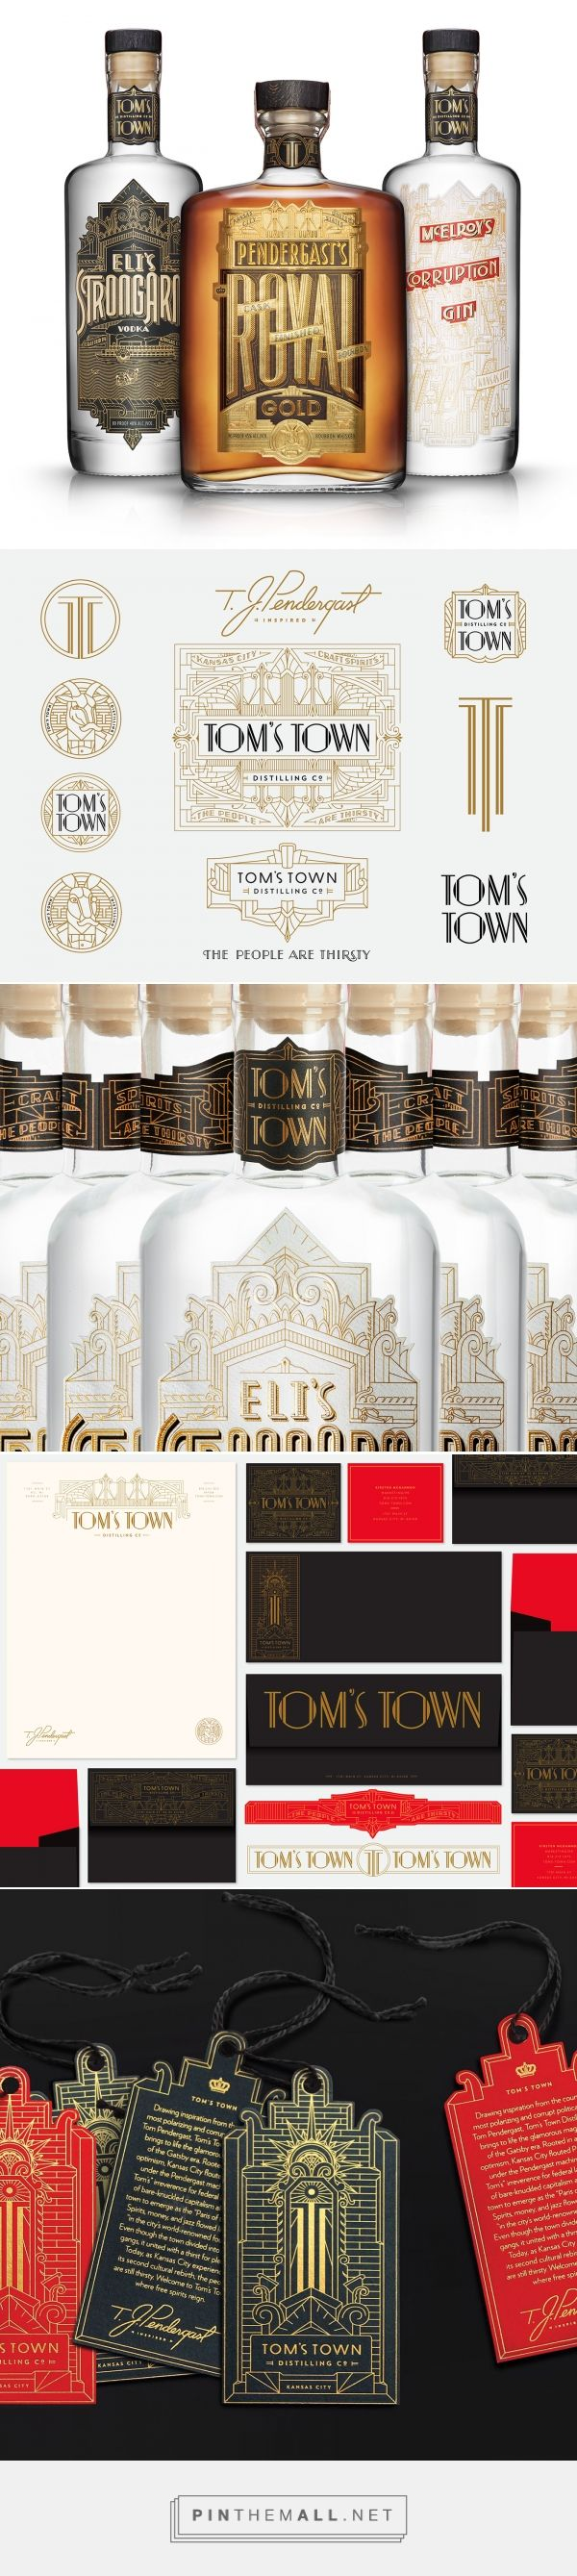 Tom's Town Distilling packaging design by Kevin Cantrell Design - http://www.packagingoftheworld.com/2017/12/toms-town-distilling.html